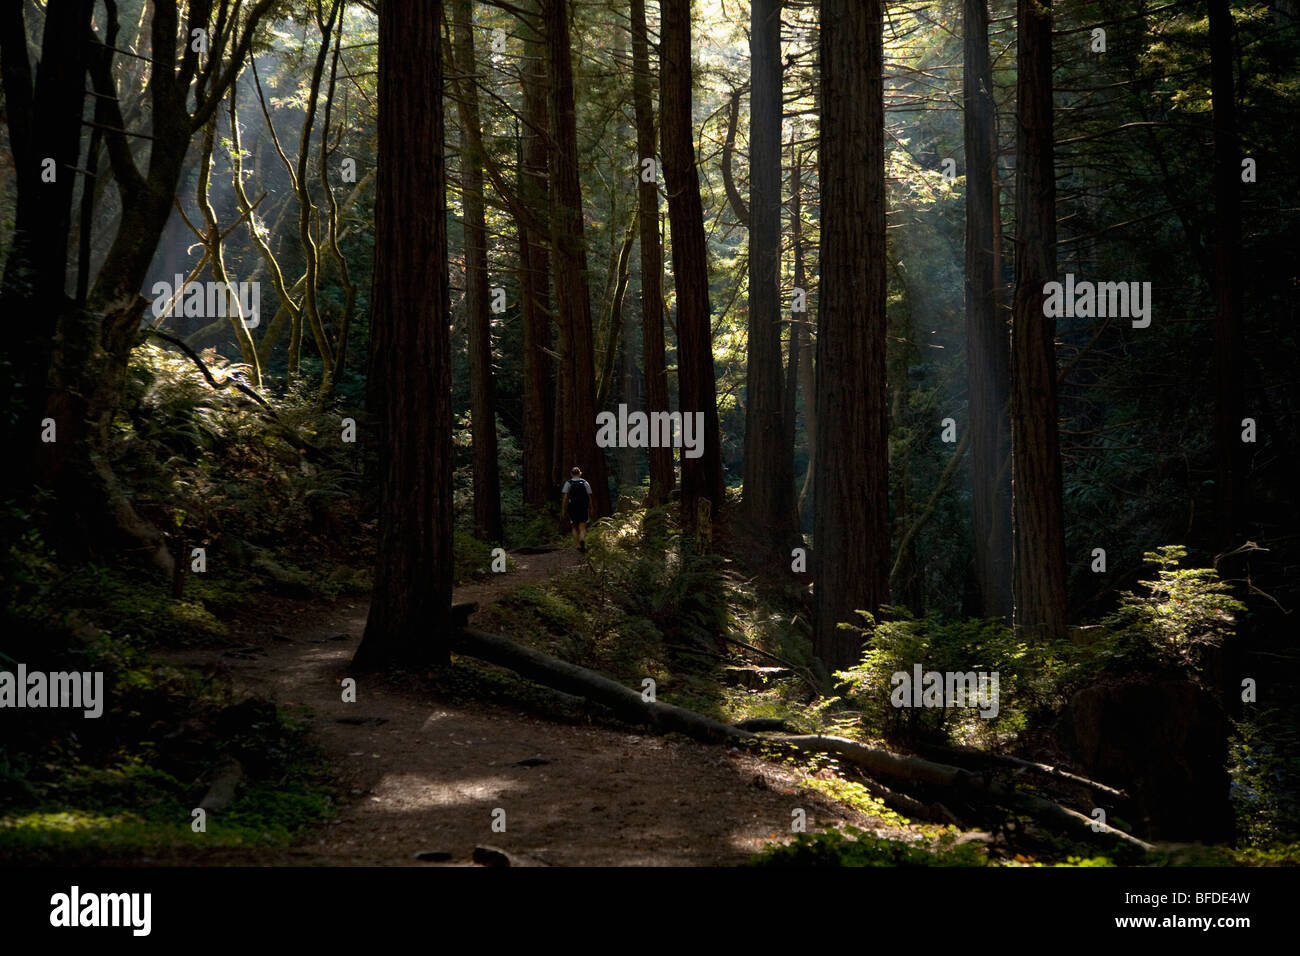 A women hiking a waterfall trail in Big Sur, California. - Stock Image